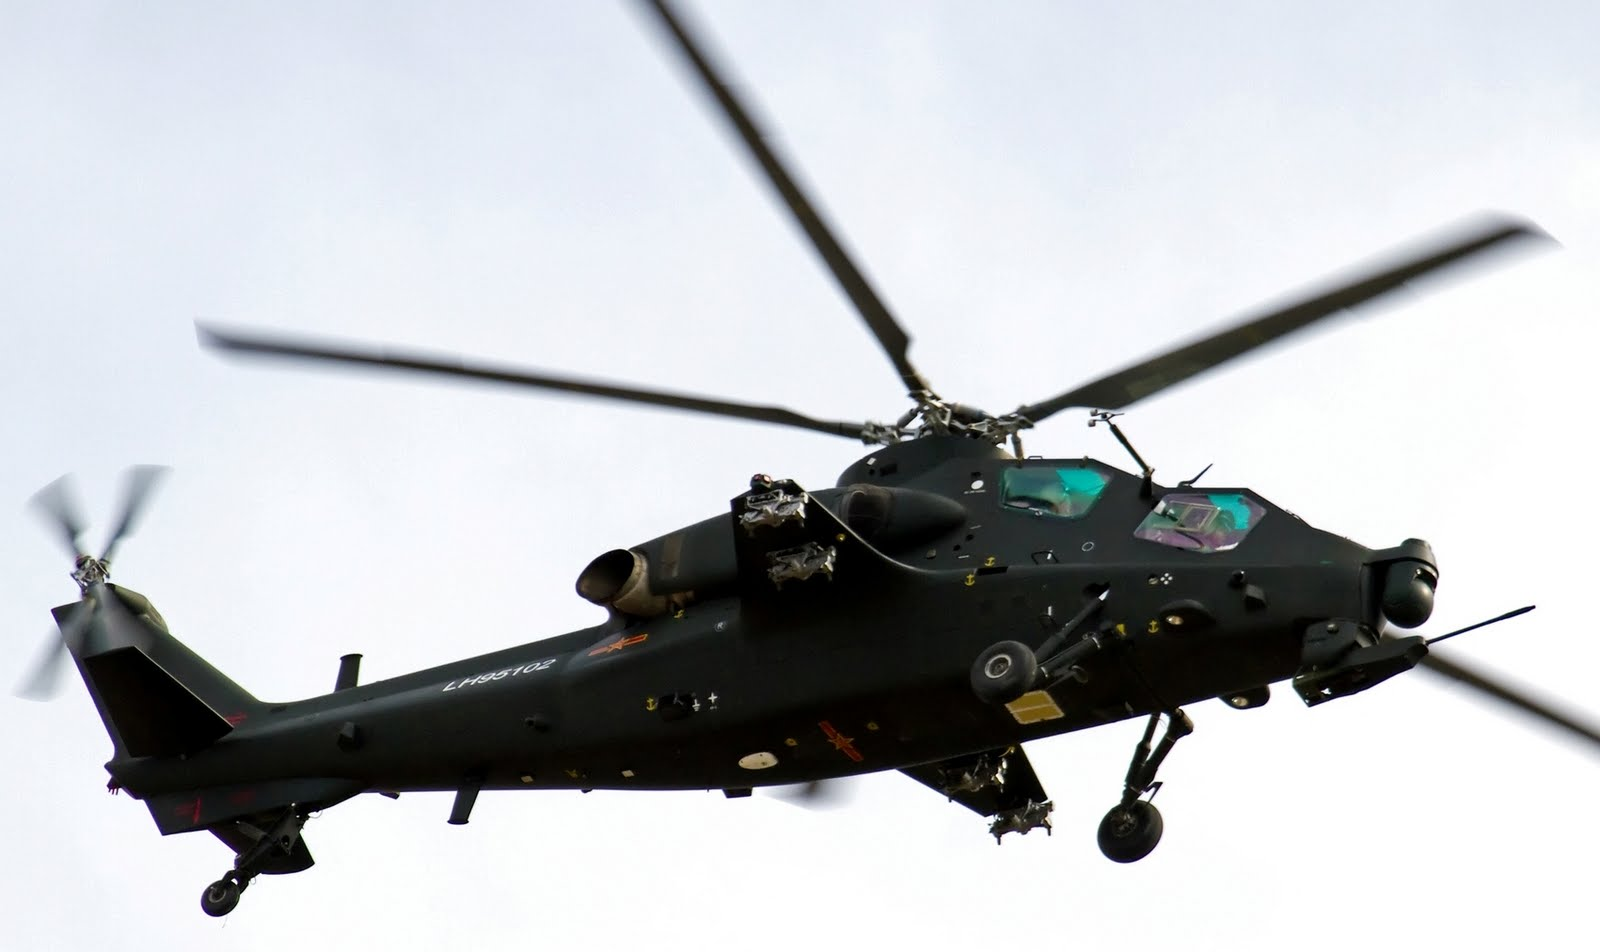 Chinese-z-10-attack-helicopter-gunship-pla-plaaf-5